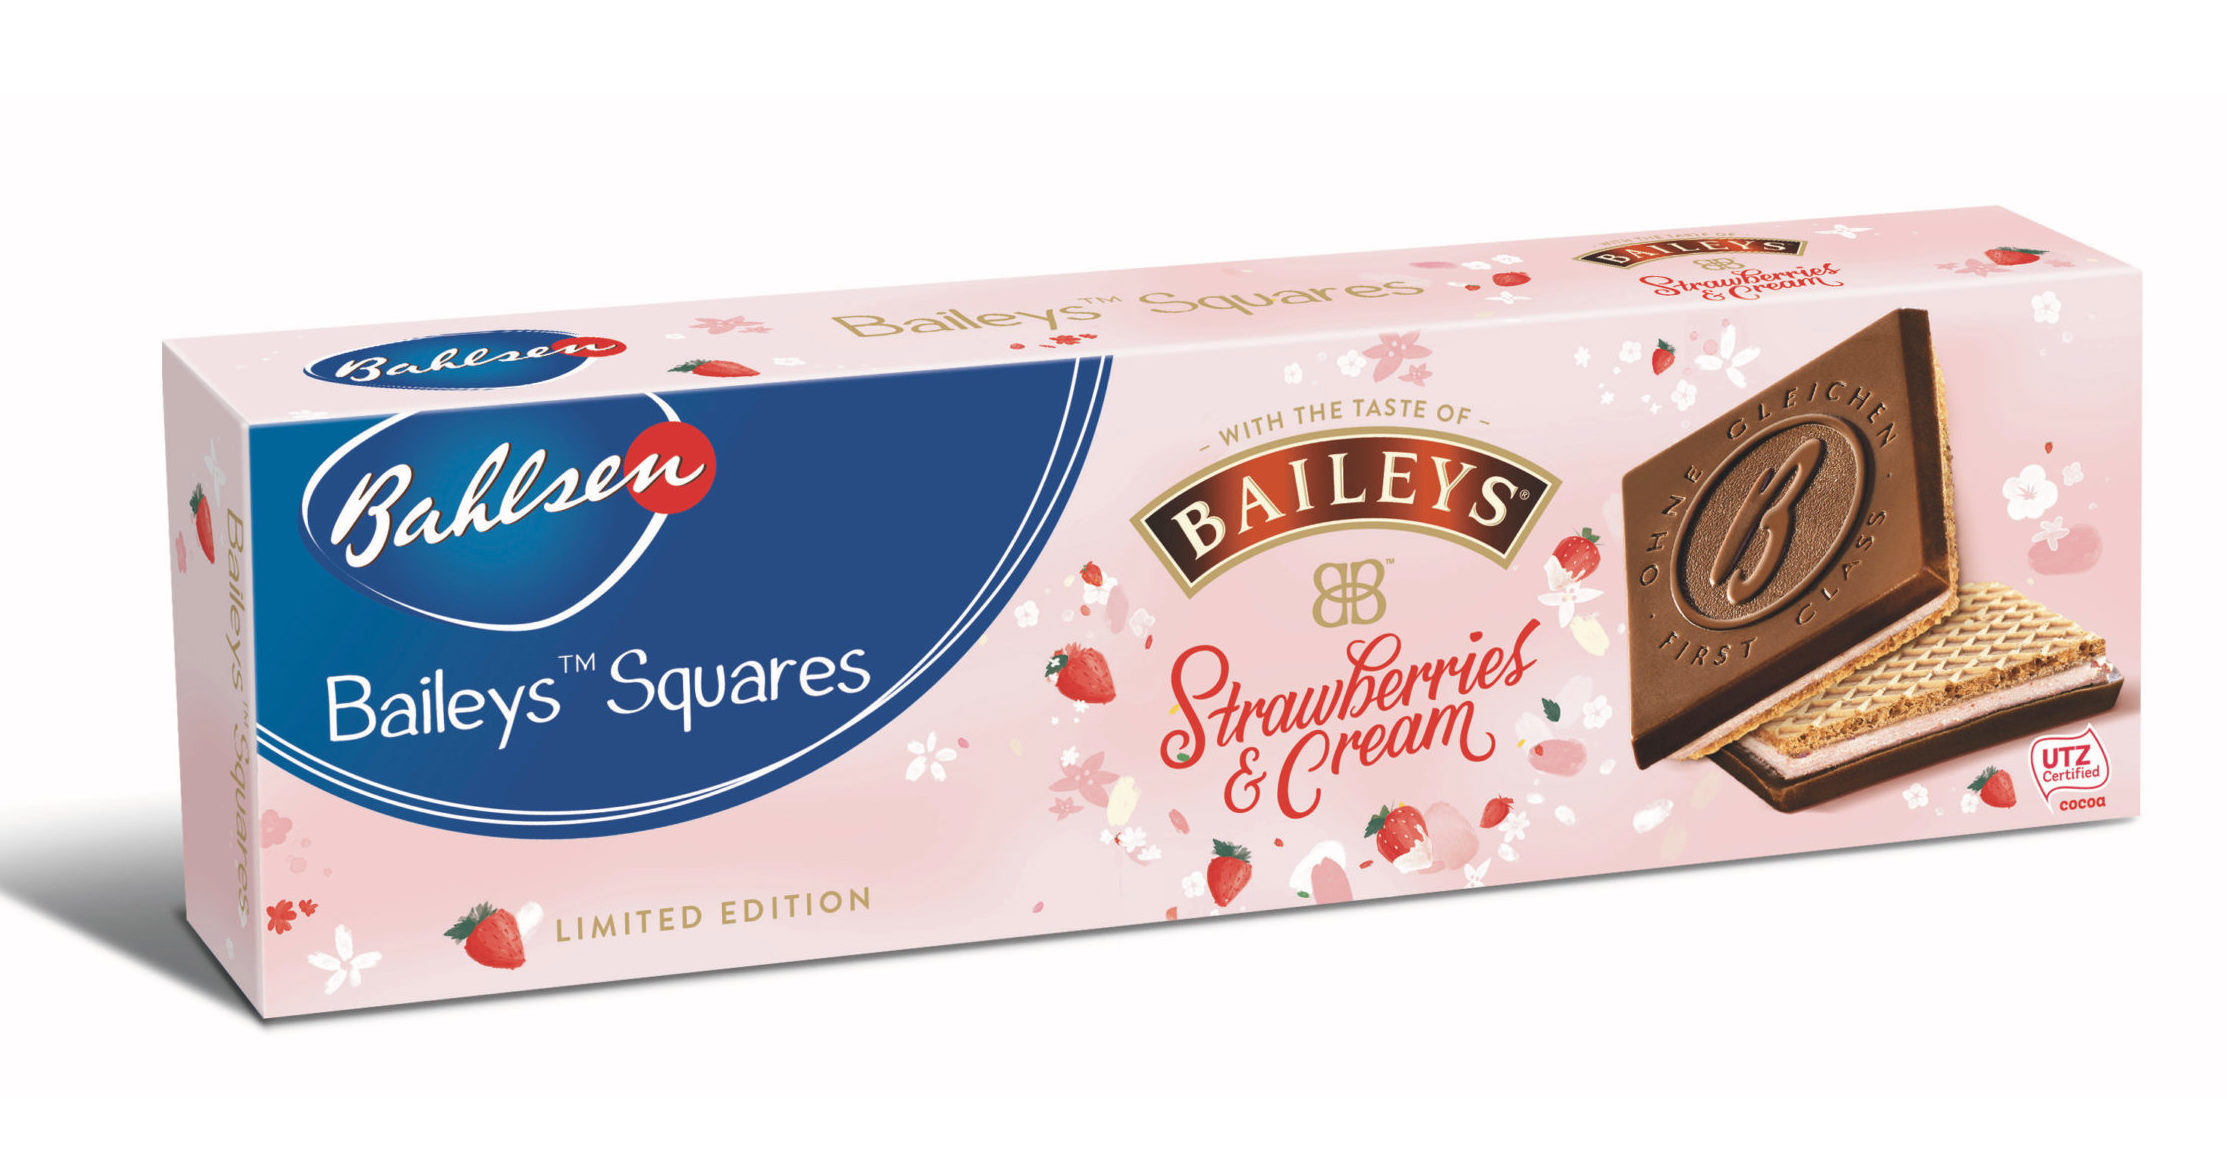 Baileys launches new chocolate-topped Strawberries & Cream liqueur biscuits